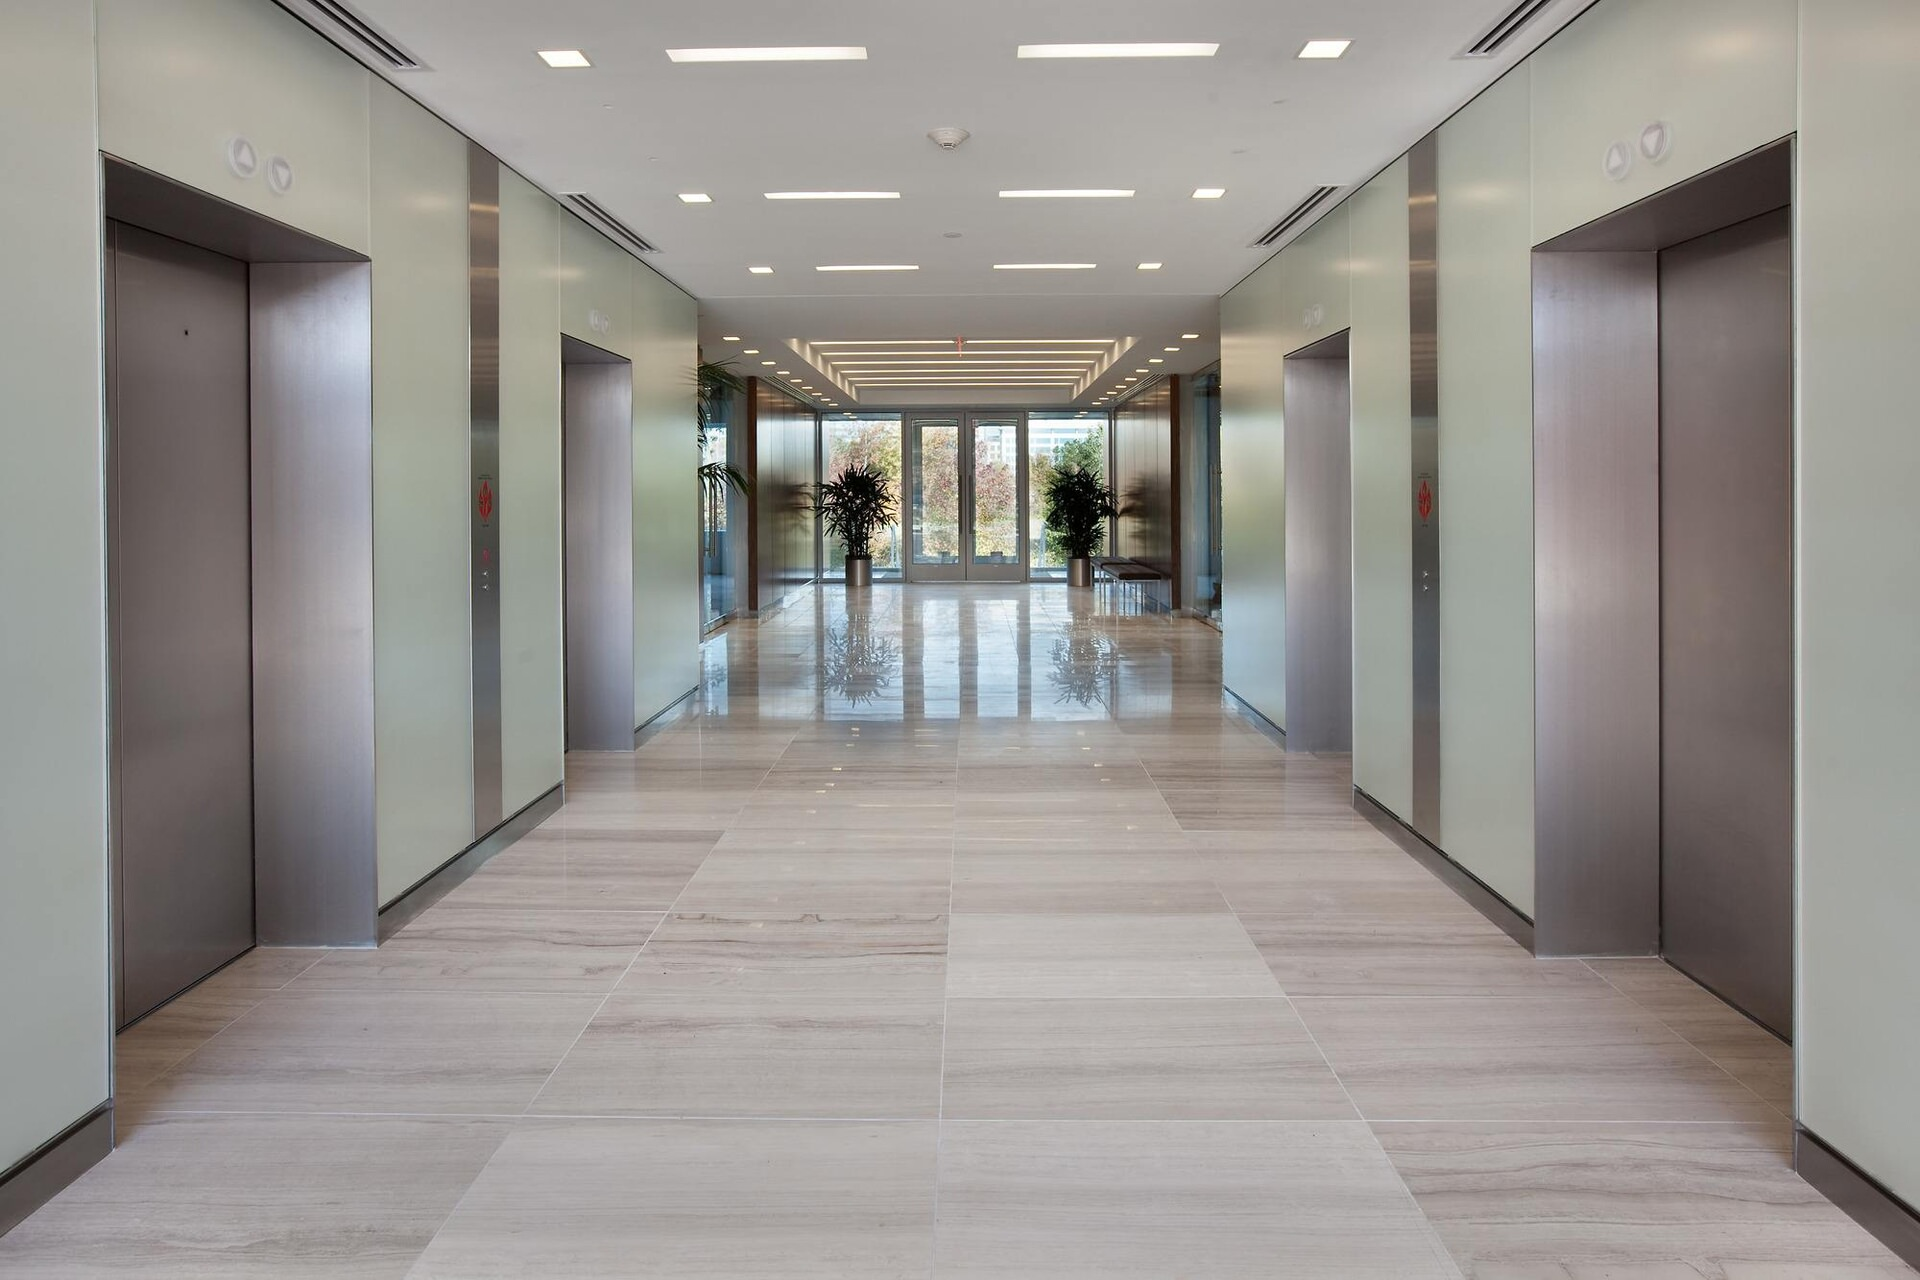 A hallway that is inside of an office building and there are elevators on either side of it to go up.